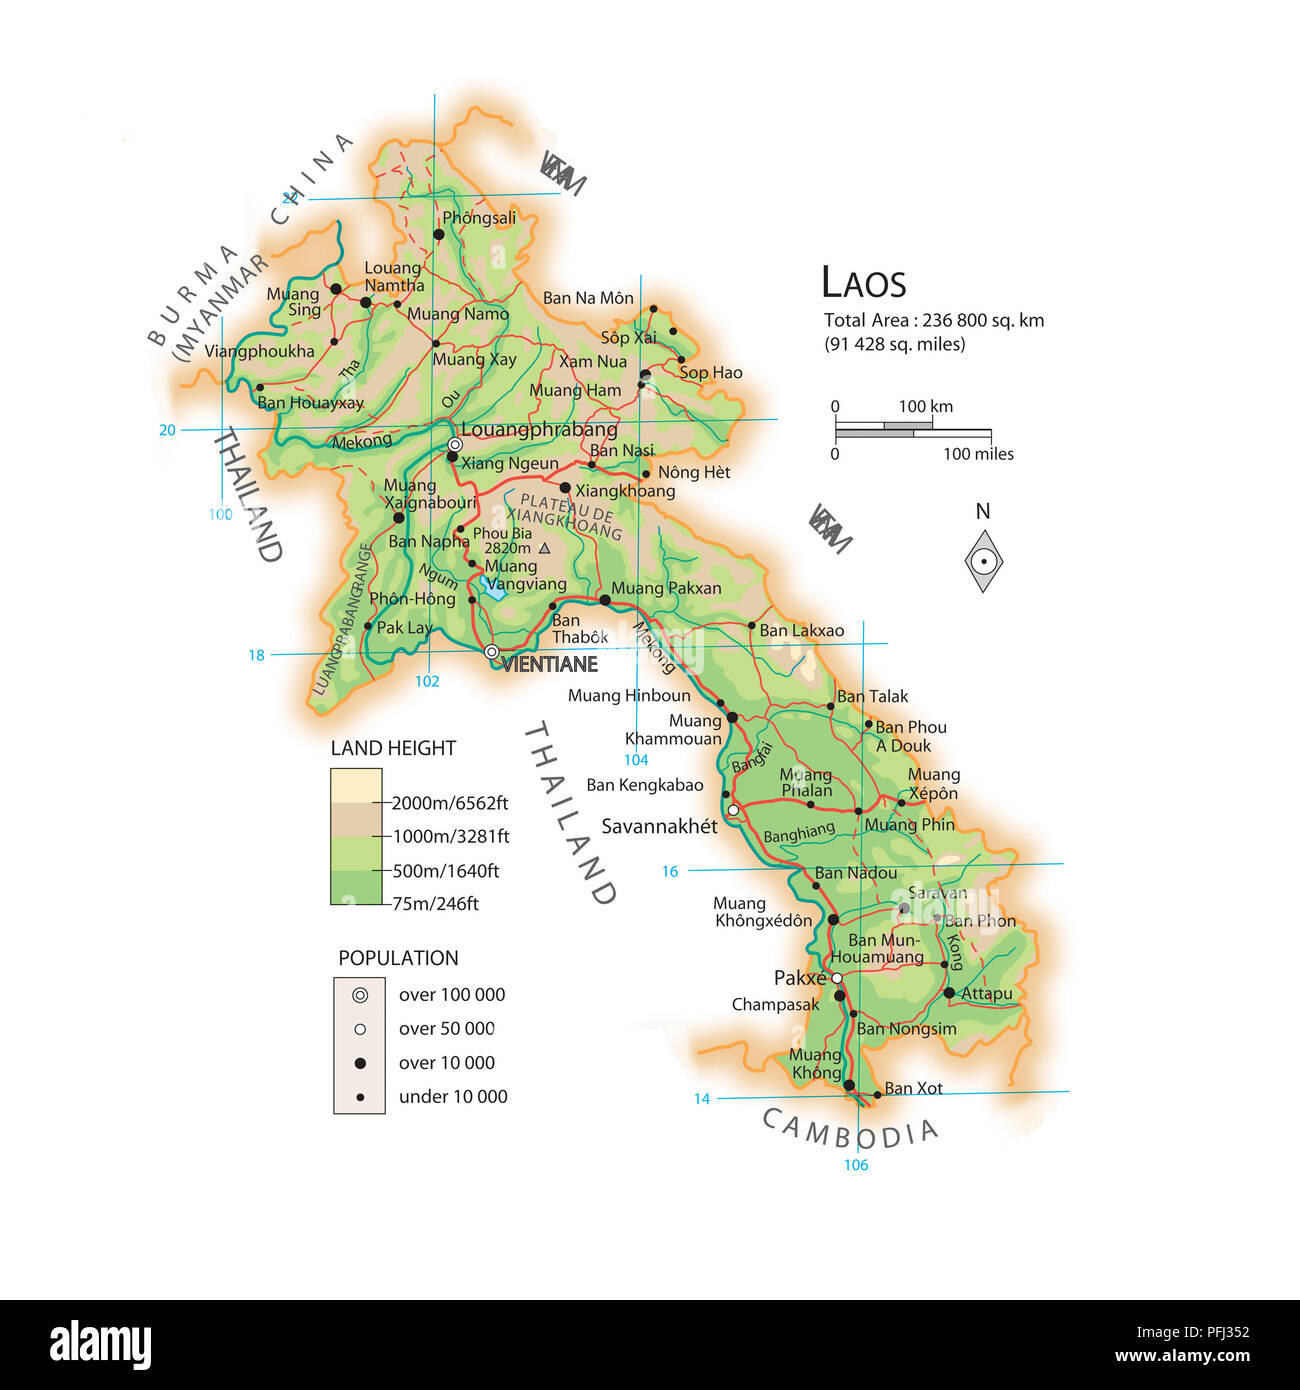 Map Of Laos Stock Photos & Map Of Laos Stock Images - Alamy